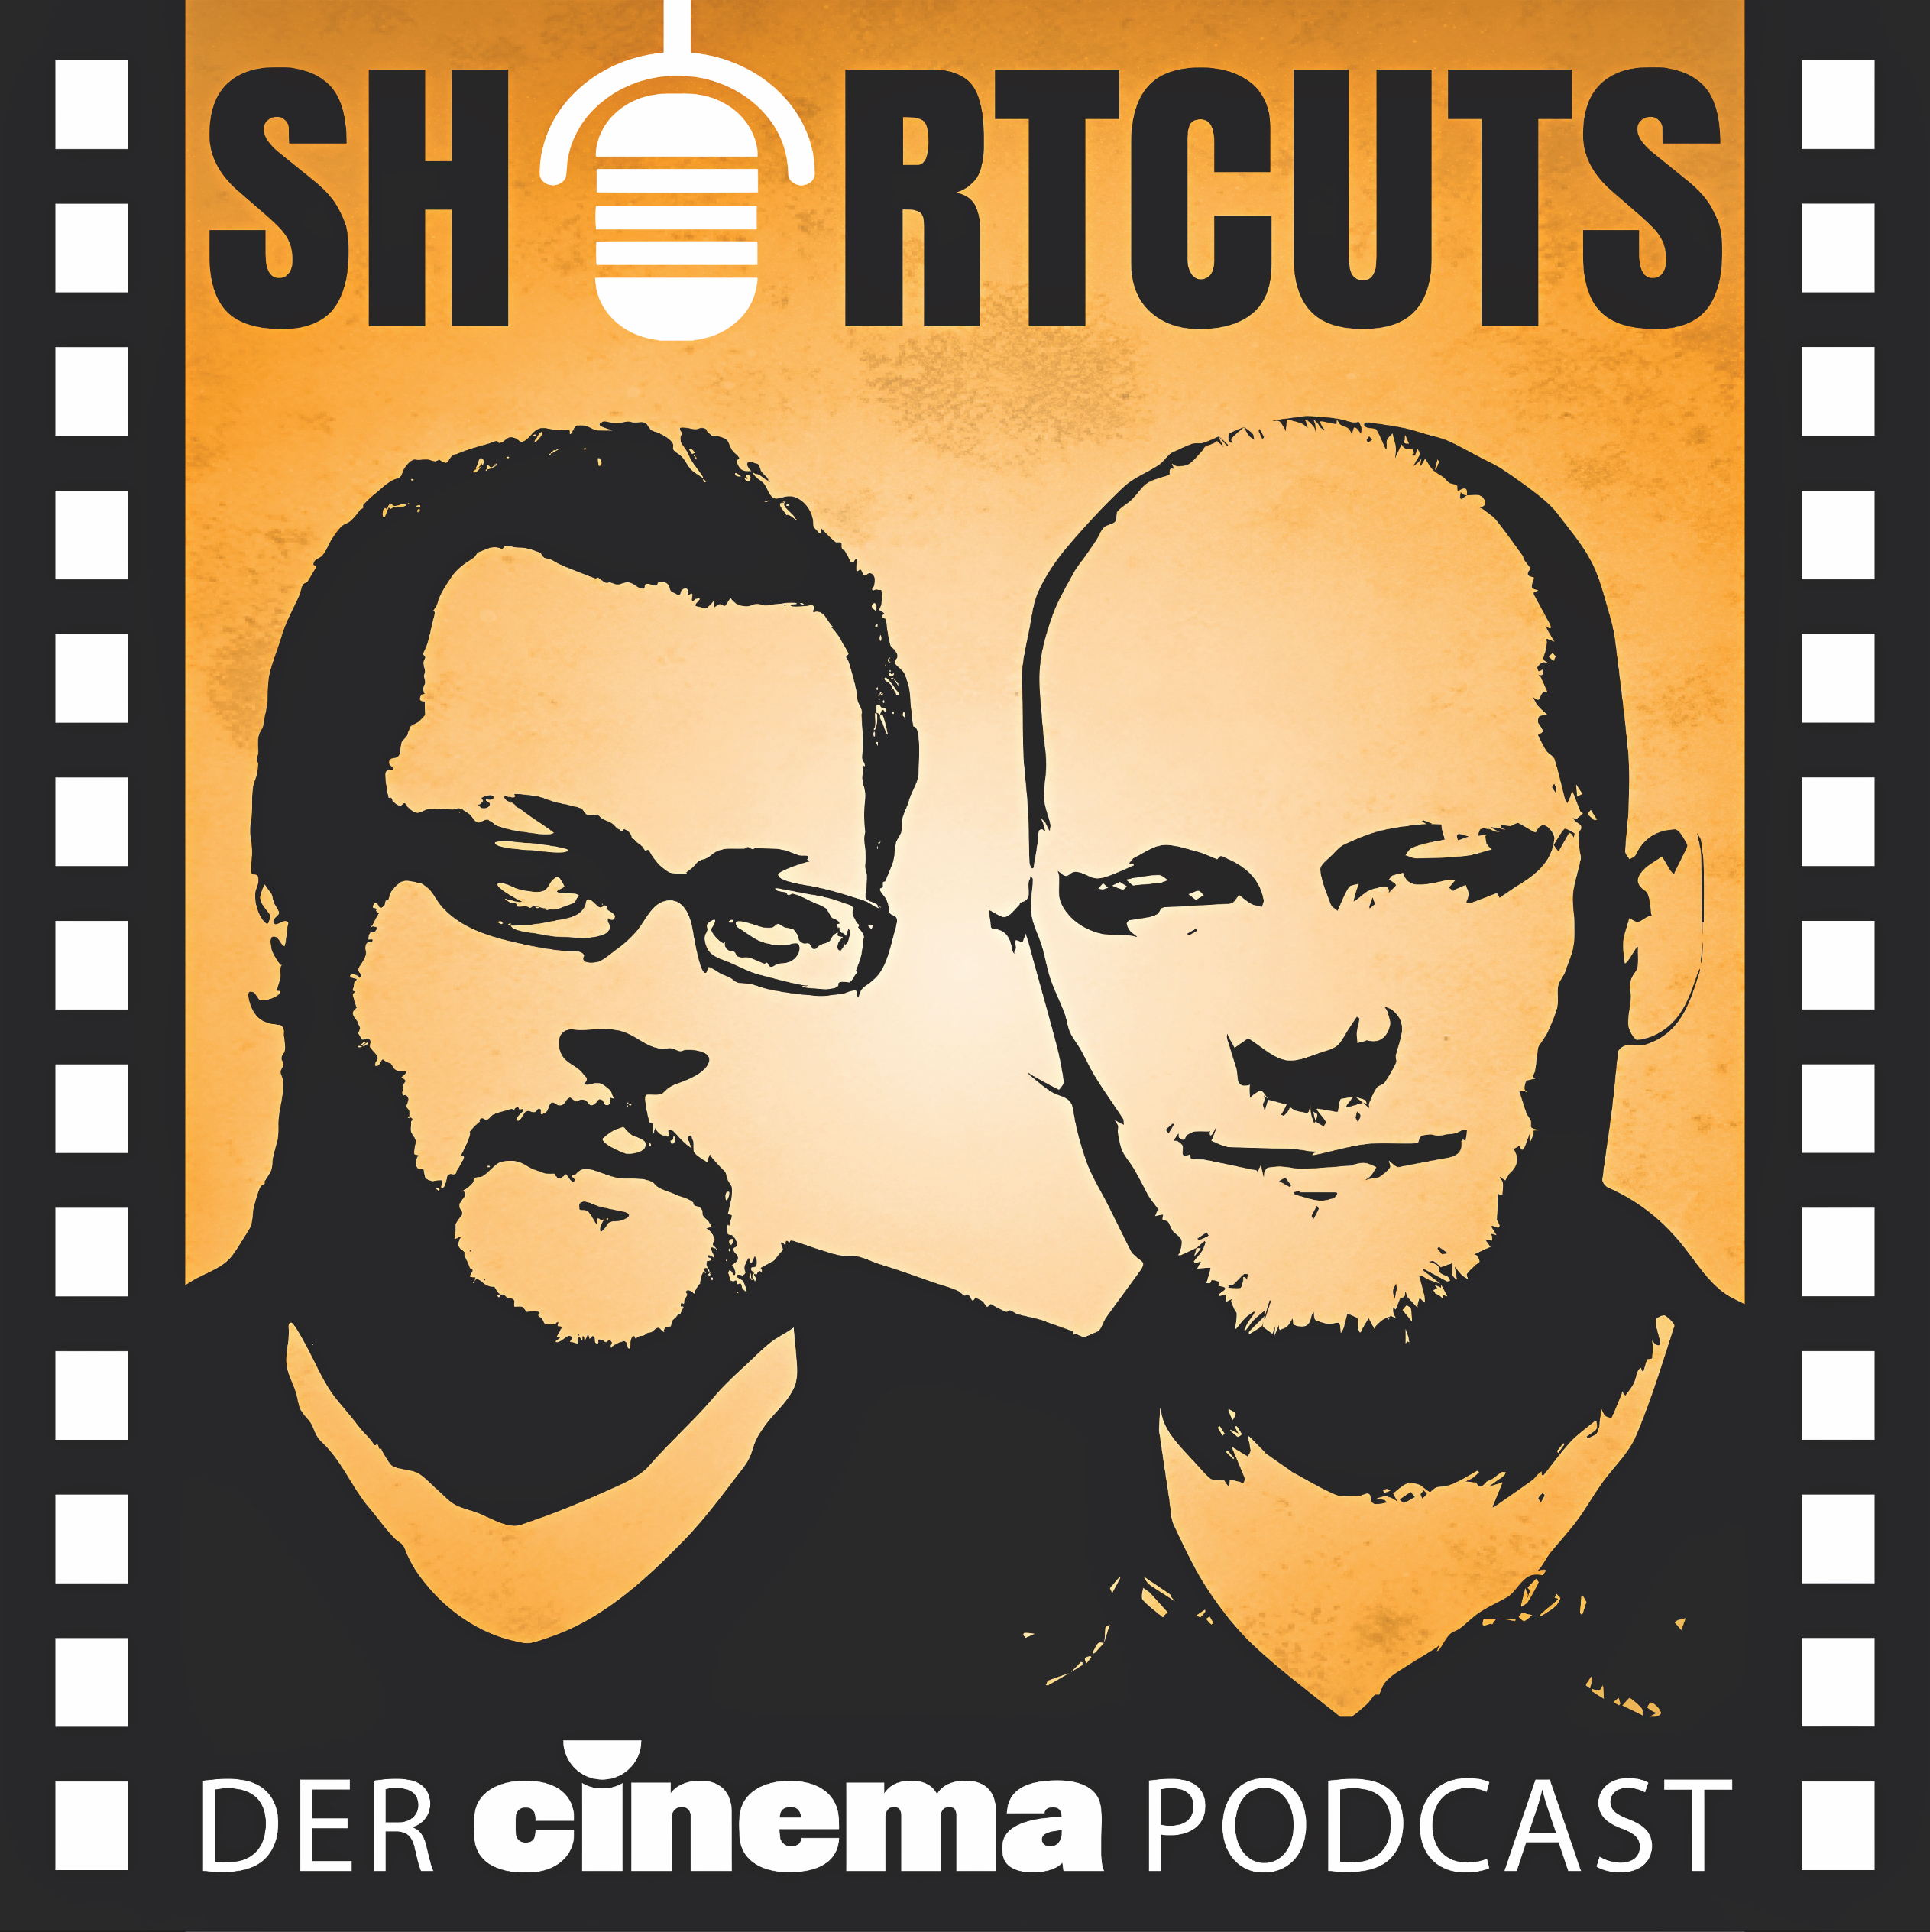 Kino-Vorschau Three Billboards, Black Panther, Mortal Engines, Heim-Kino & Netflix-Tipps